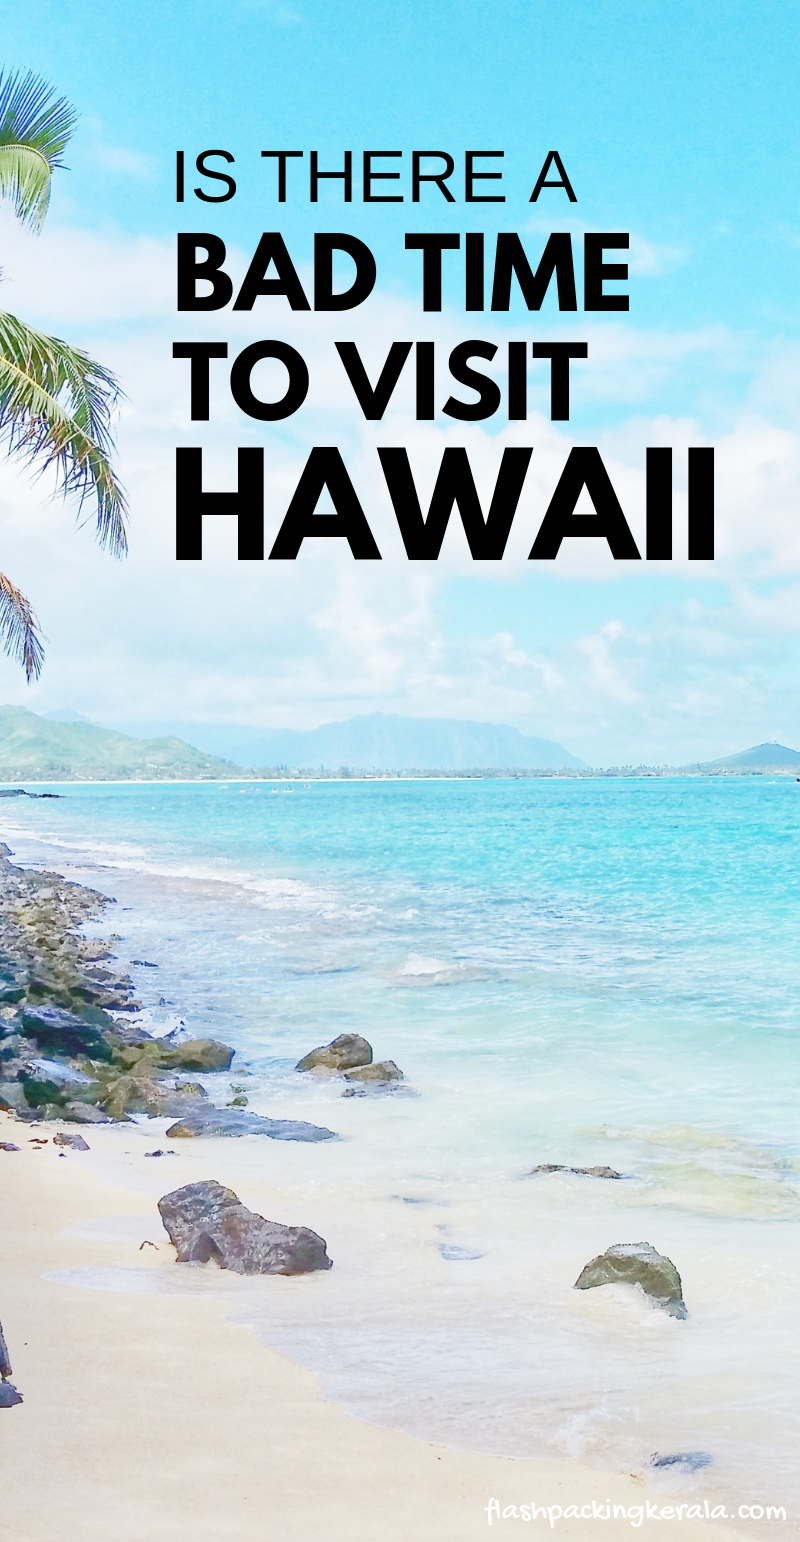 Hawaii Travel Is There A Bad Time To Visit Maui Kauai Oahu Island When Go Outdoor Destinations Culture Bucket